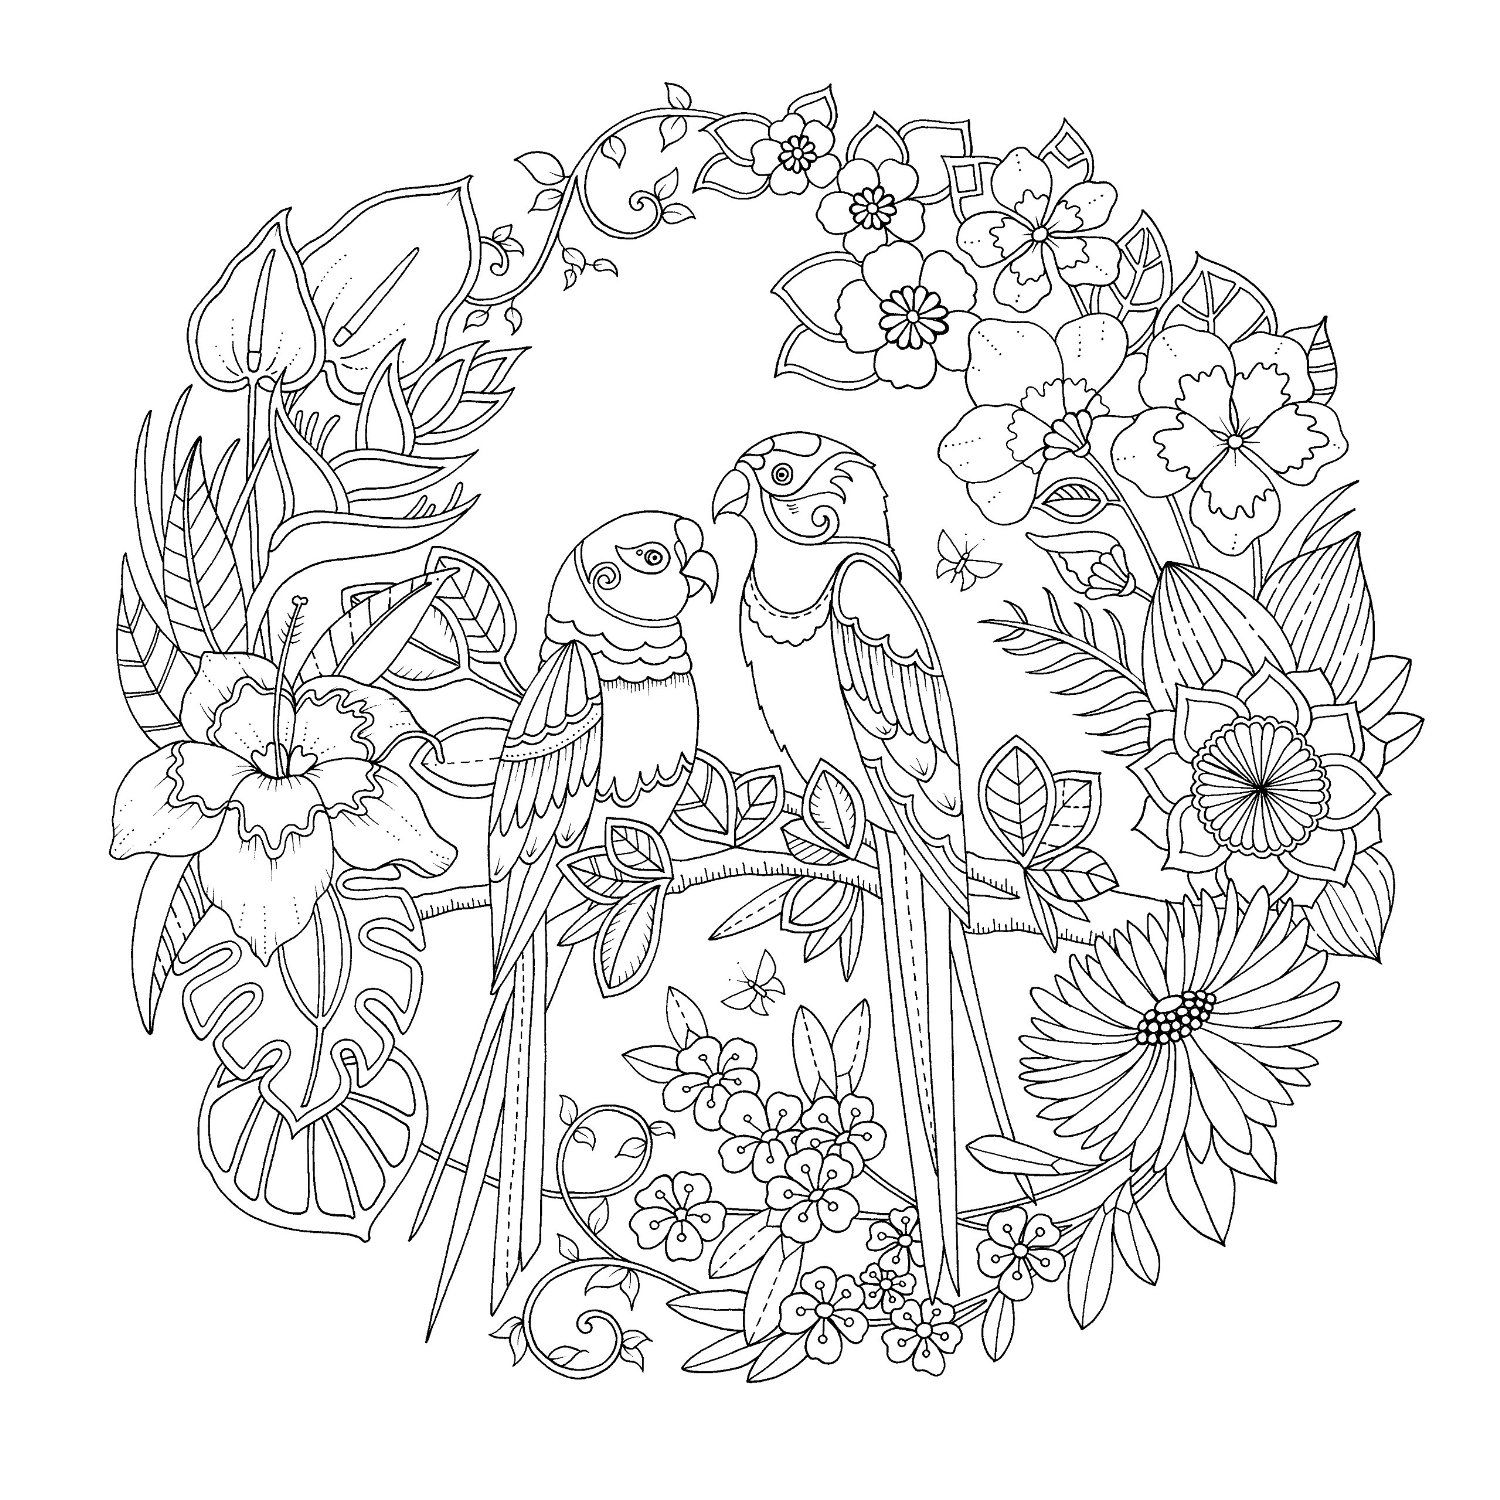 Coloring pages for donna flor - Magical Jungle An Inky Expedition Colouring Book Colouring Books